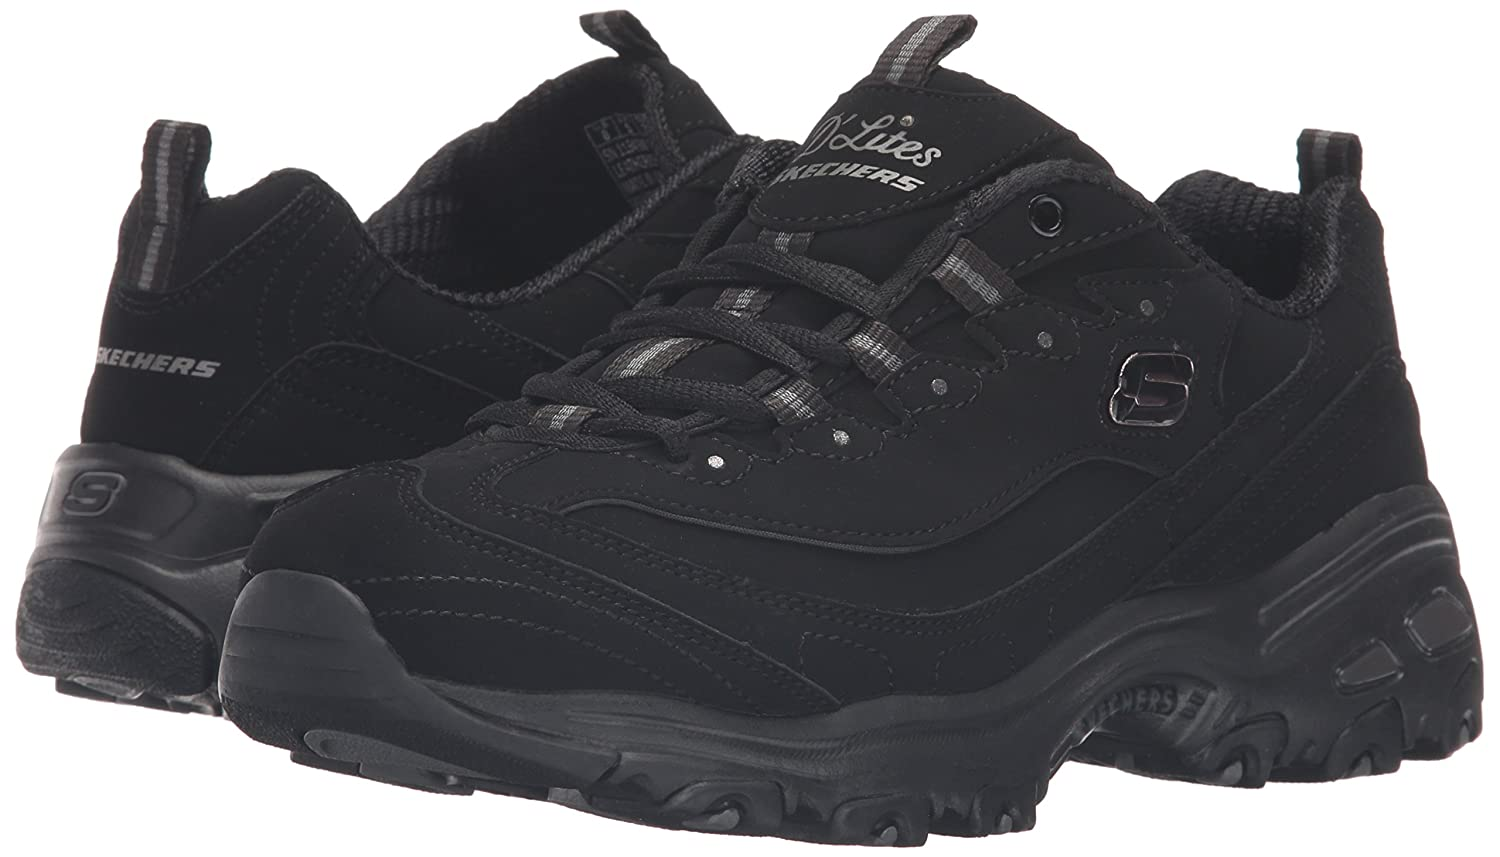 Skechers Women's D'Lites Memory Foam Lace-up Sneaker B01ESD641I 5 W US|Black/Black